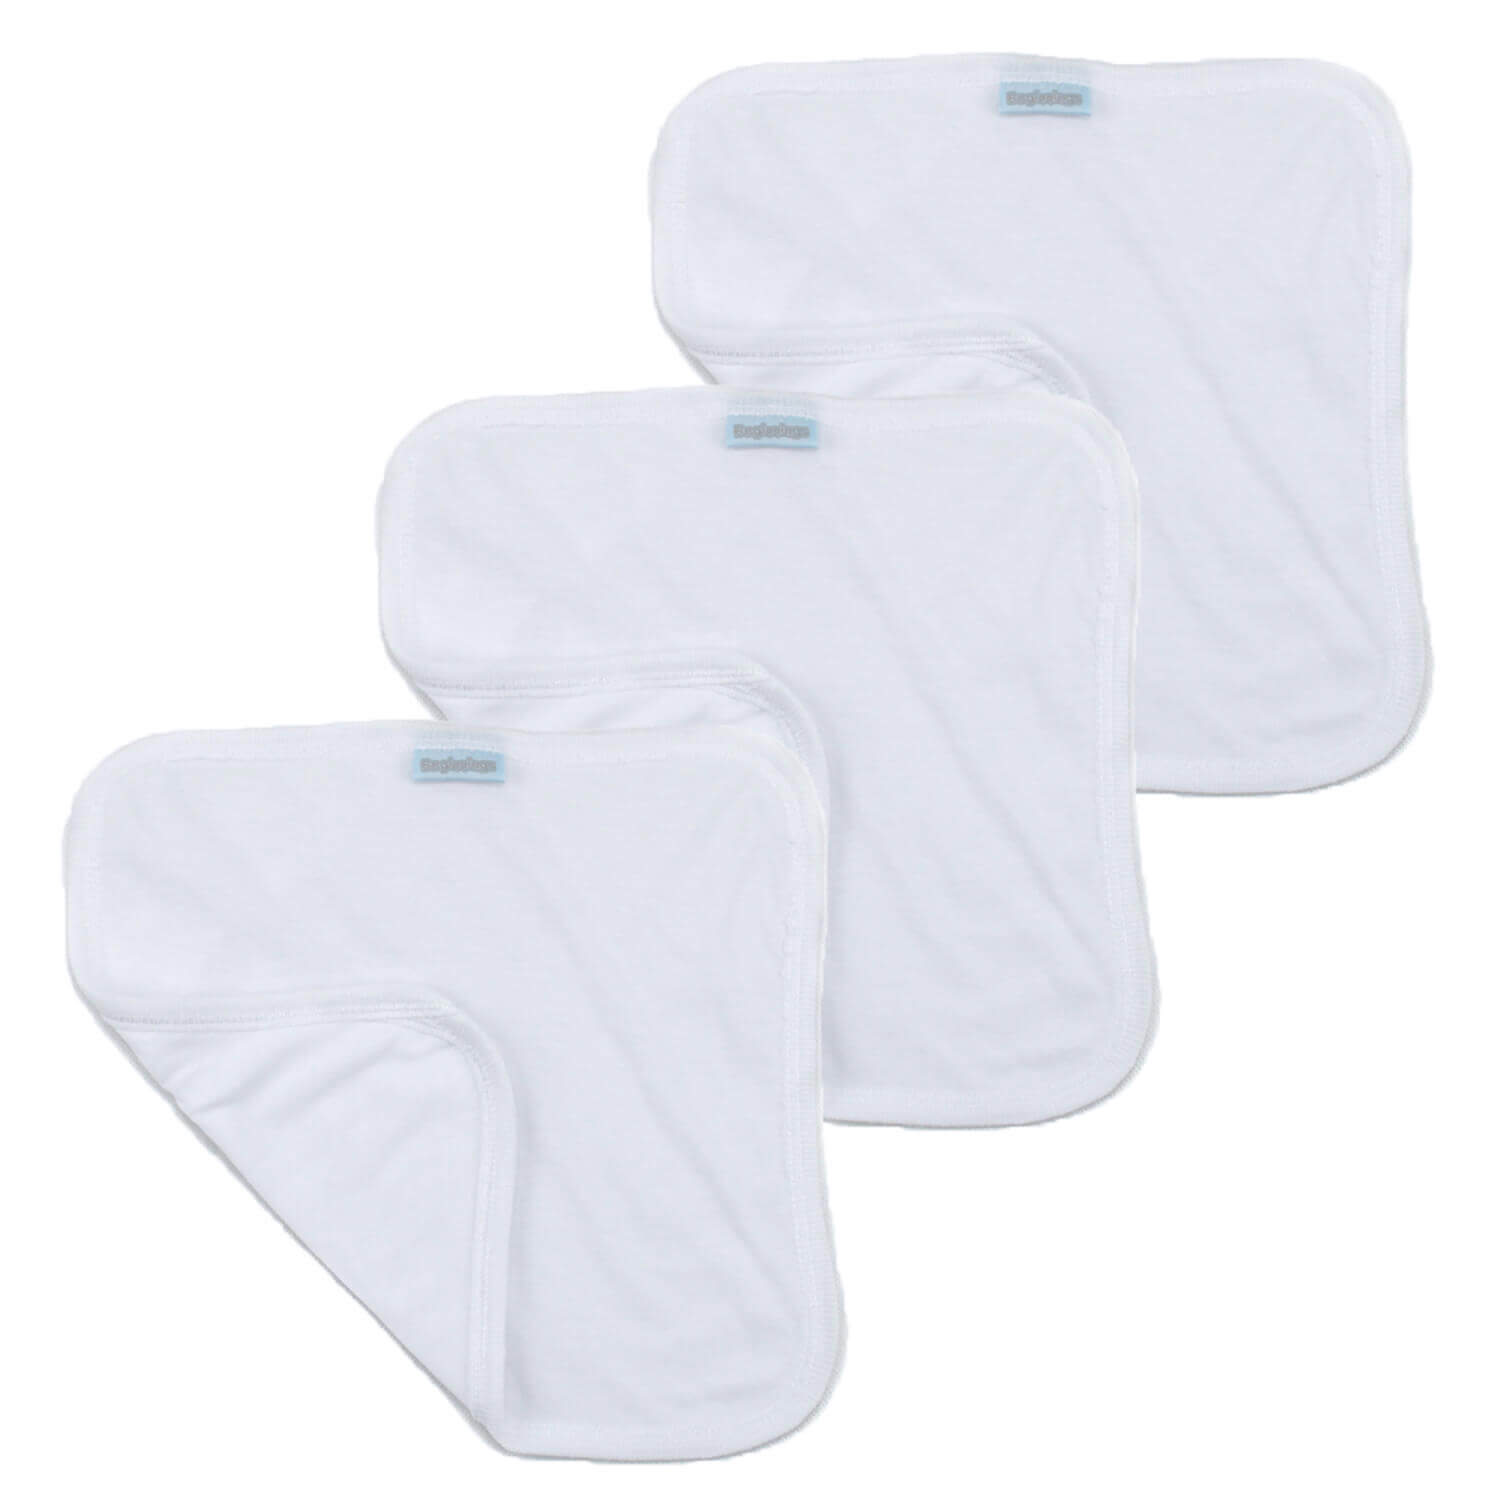 (Unisex) TC Washcloth Pack (3pcs)